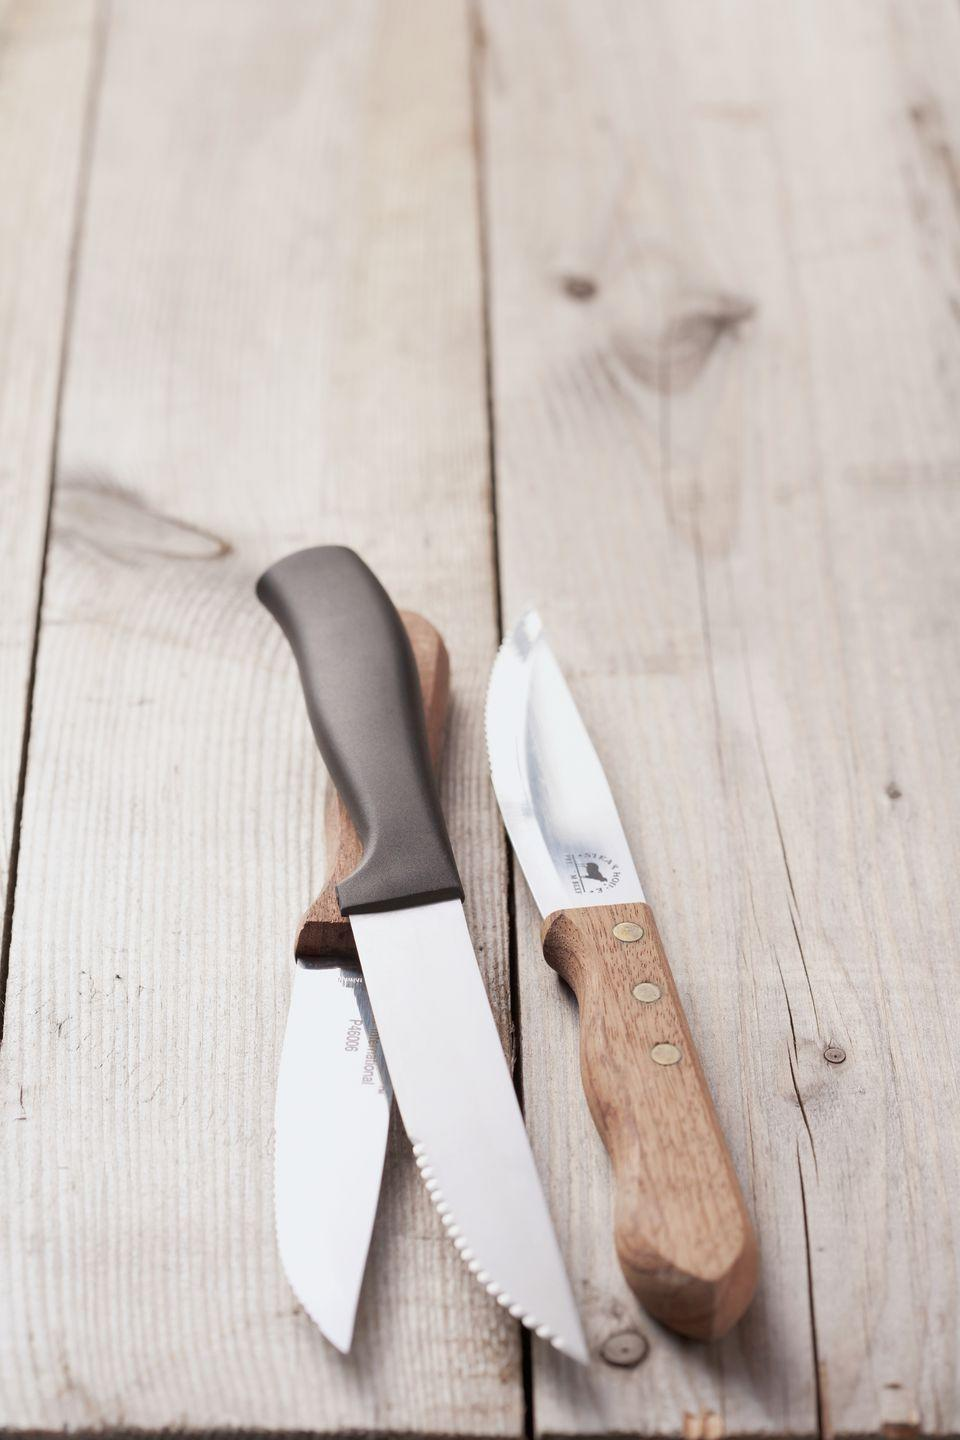 "<p>Especially steak knives that were cheap to begin with and can't easily be sharpened. They're actually more harmful and dangerous than your sharpest knife. <a href=""http://lifehacker.com/5989542/what-is-the-proper-way-to-dispose-of-a-kitchen-knife"" rel=""nofollow noopener"" target=""_blank"" data-ylk=""slk:Donate"" class=""link rapid-noclick-resp"">Donate</a> old knives, but make sure you wrap the blade with cardboard beforehand (and label it!) for safety. </p><p> <a class=""link rapid-noclick-resp"" href=""https://www.amazon.com/Emojoy-Pakkawood-Resistant-Stainless-Serrated/dp/B079GQJP39?tag=syn-yahoo-20&ascsubtag=%5Bartid%7C10070.g.30809532%5Bsrc%7Cyahoo-us"" rel=""nofollow noopener"" target=""_blank"" data-ylk=""slk:SHOP NEW STEAK KNIVES"">SHOP NEW STEAK KNIVES</a></p>"